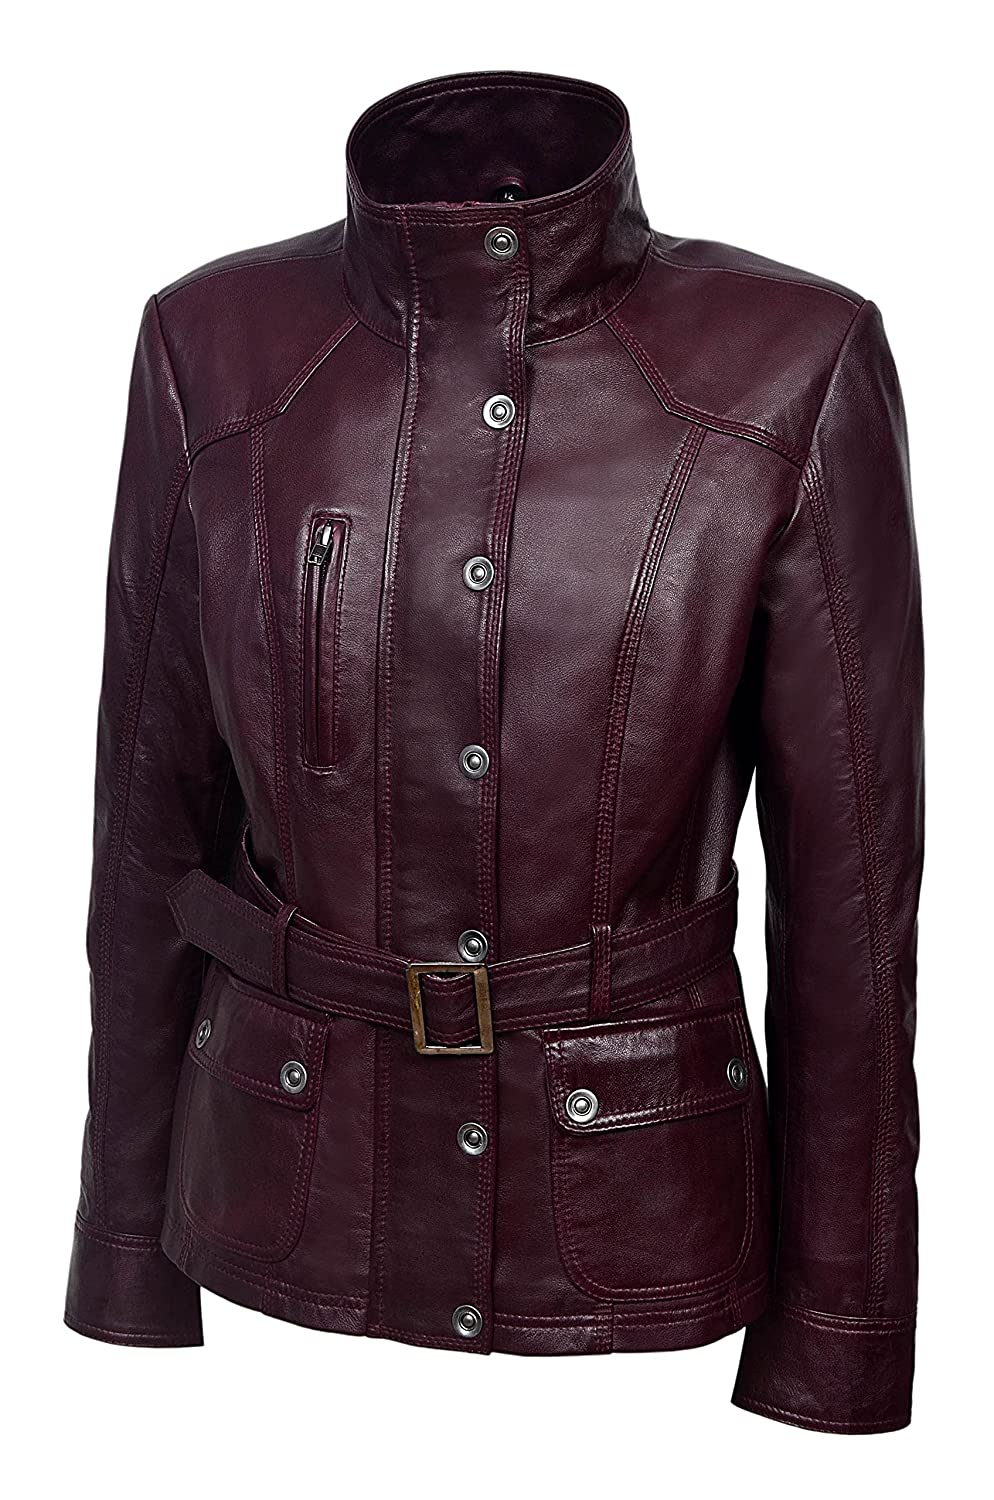 Ladies Real Leather Jacket 100/% Lambskin Classic Fashion Military Collar Rock Style 1160